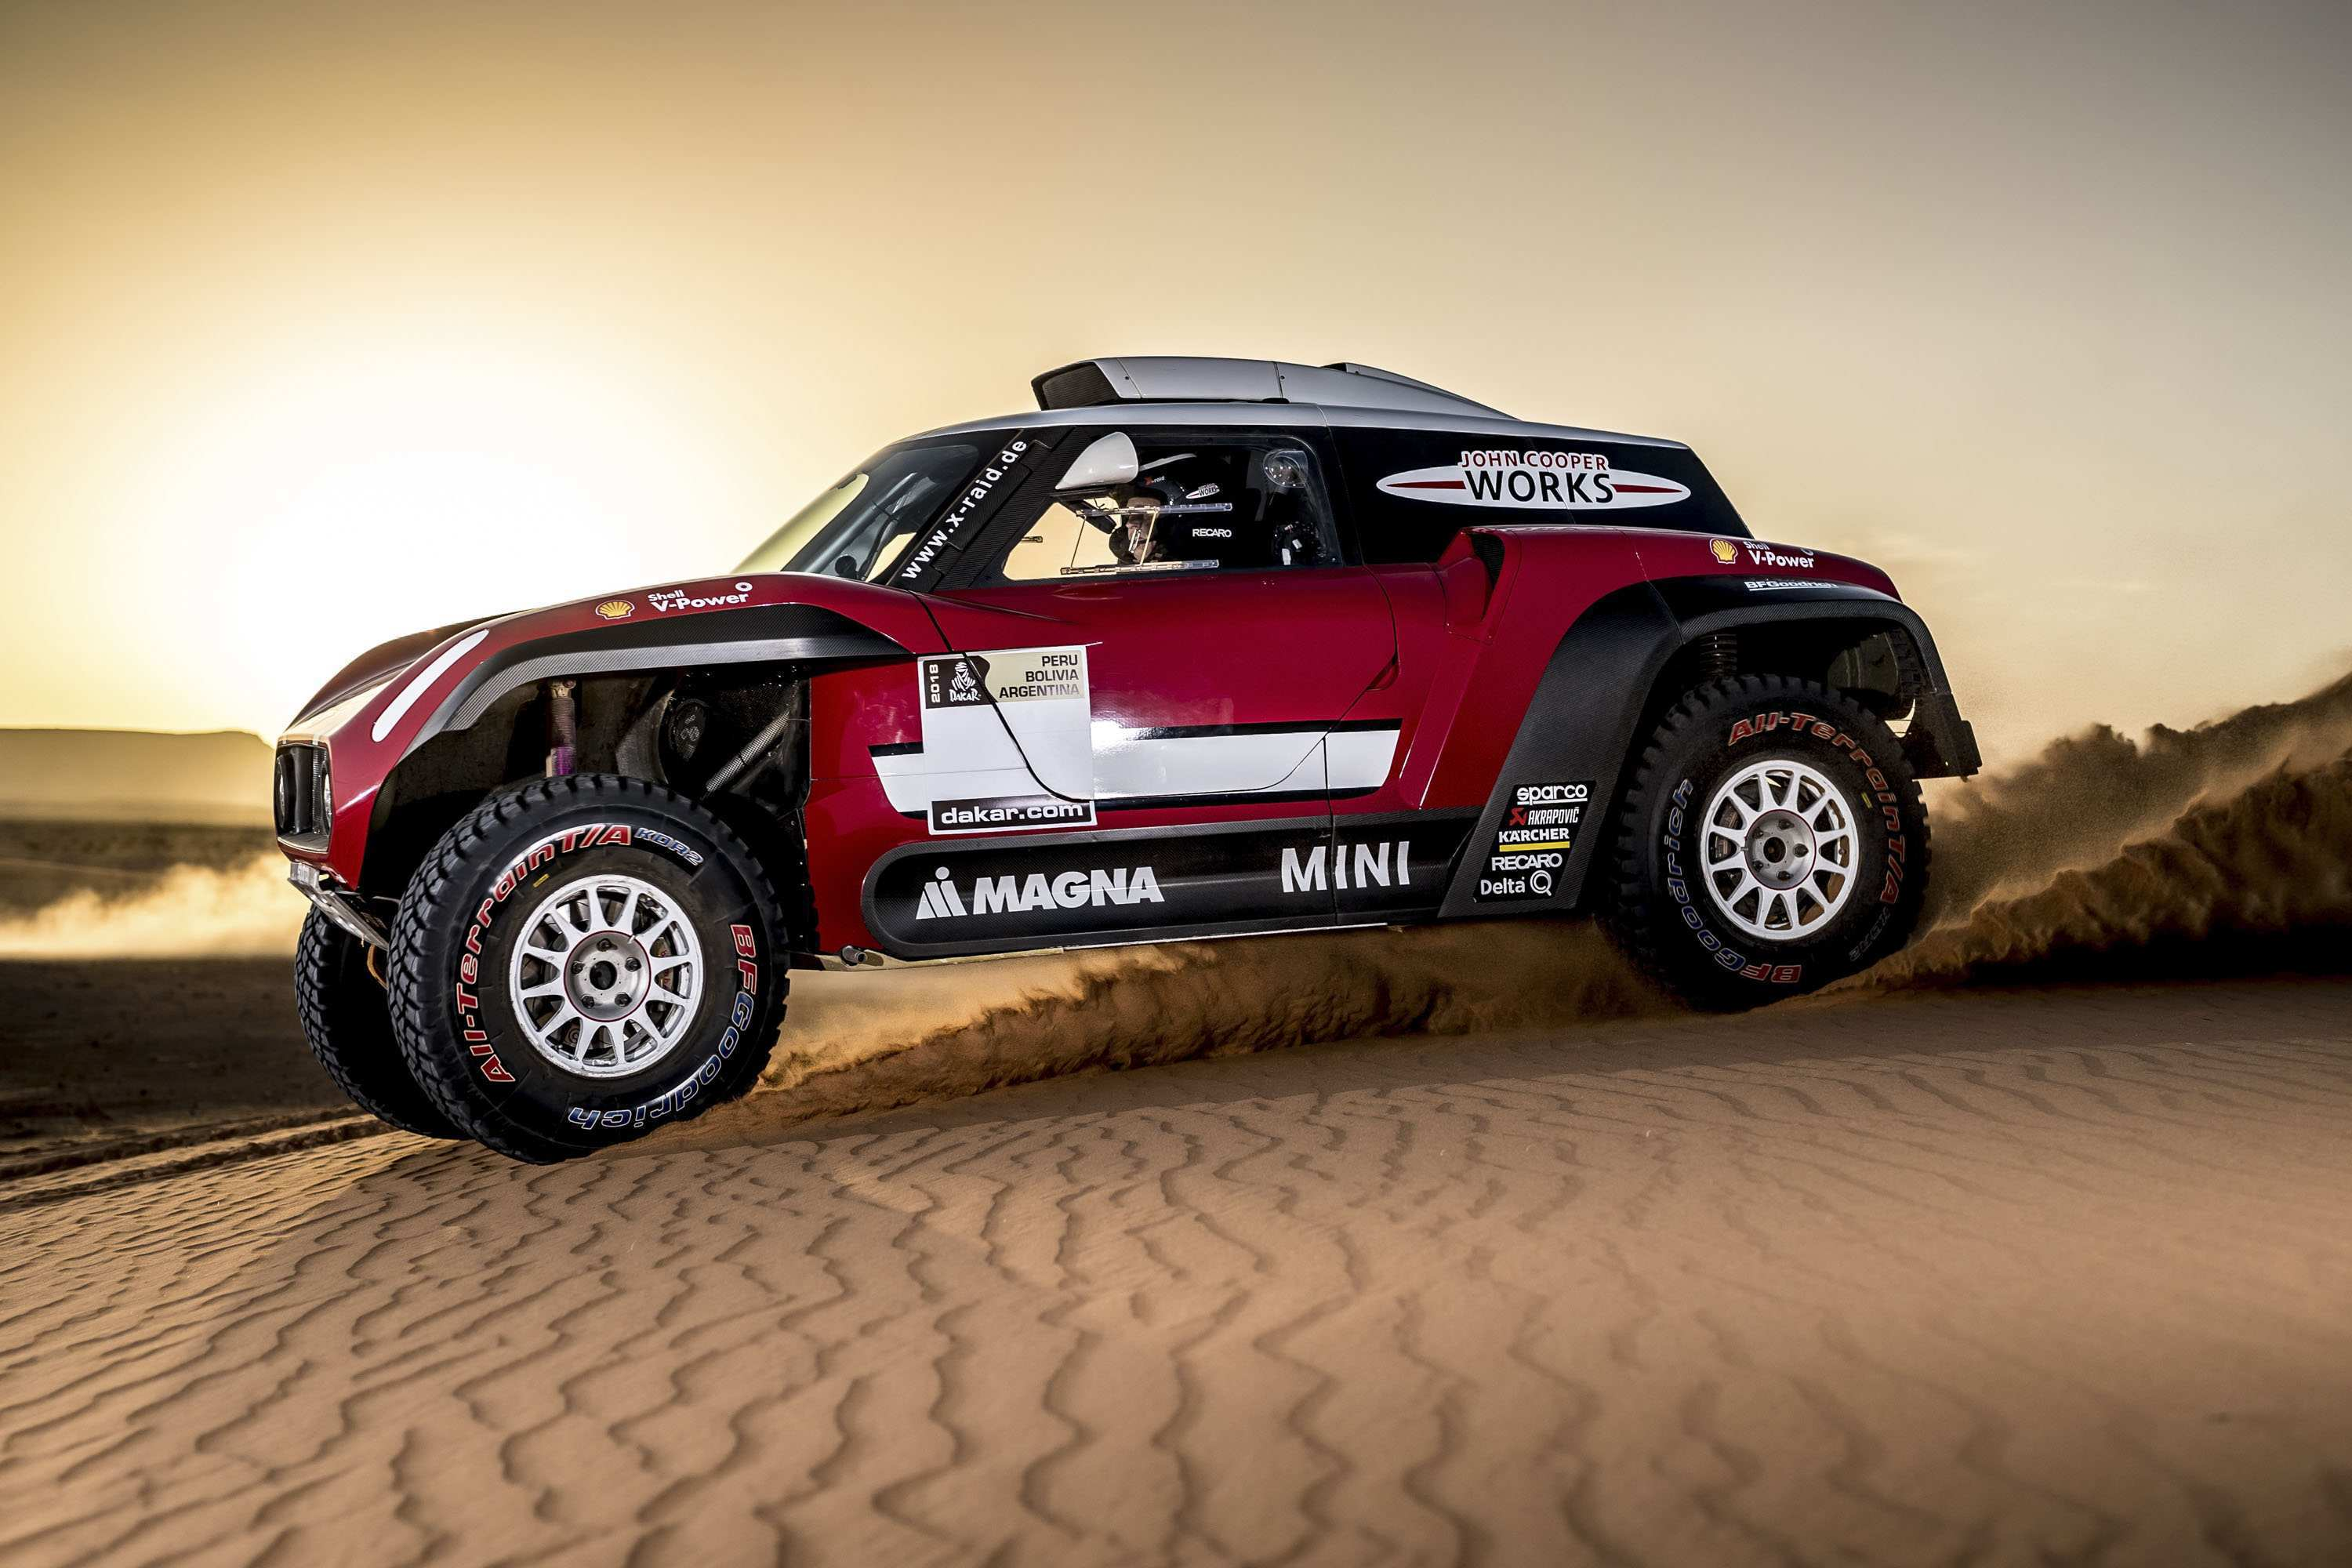 63 All New Mini Rally 2019 Images with Mini Rally 2019